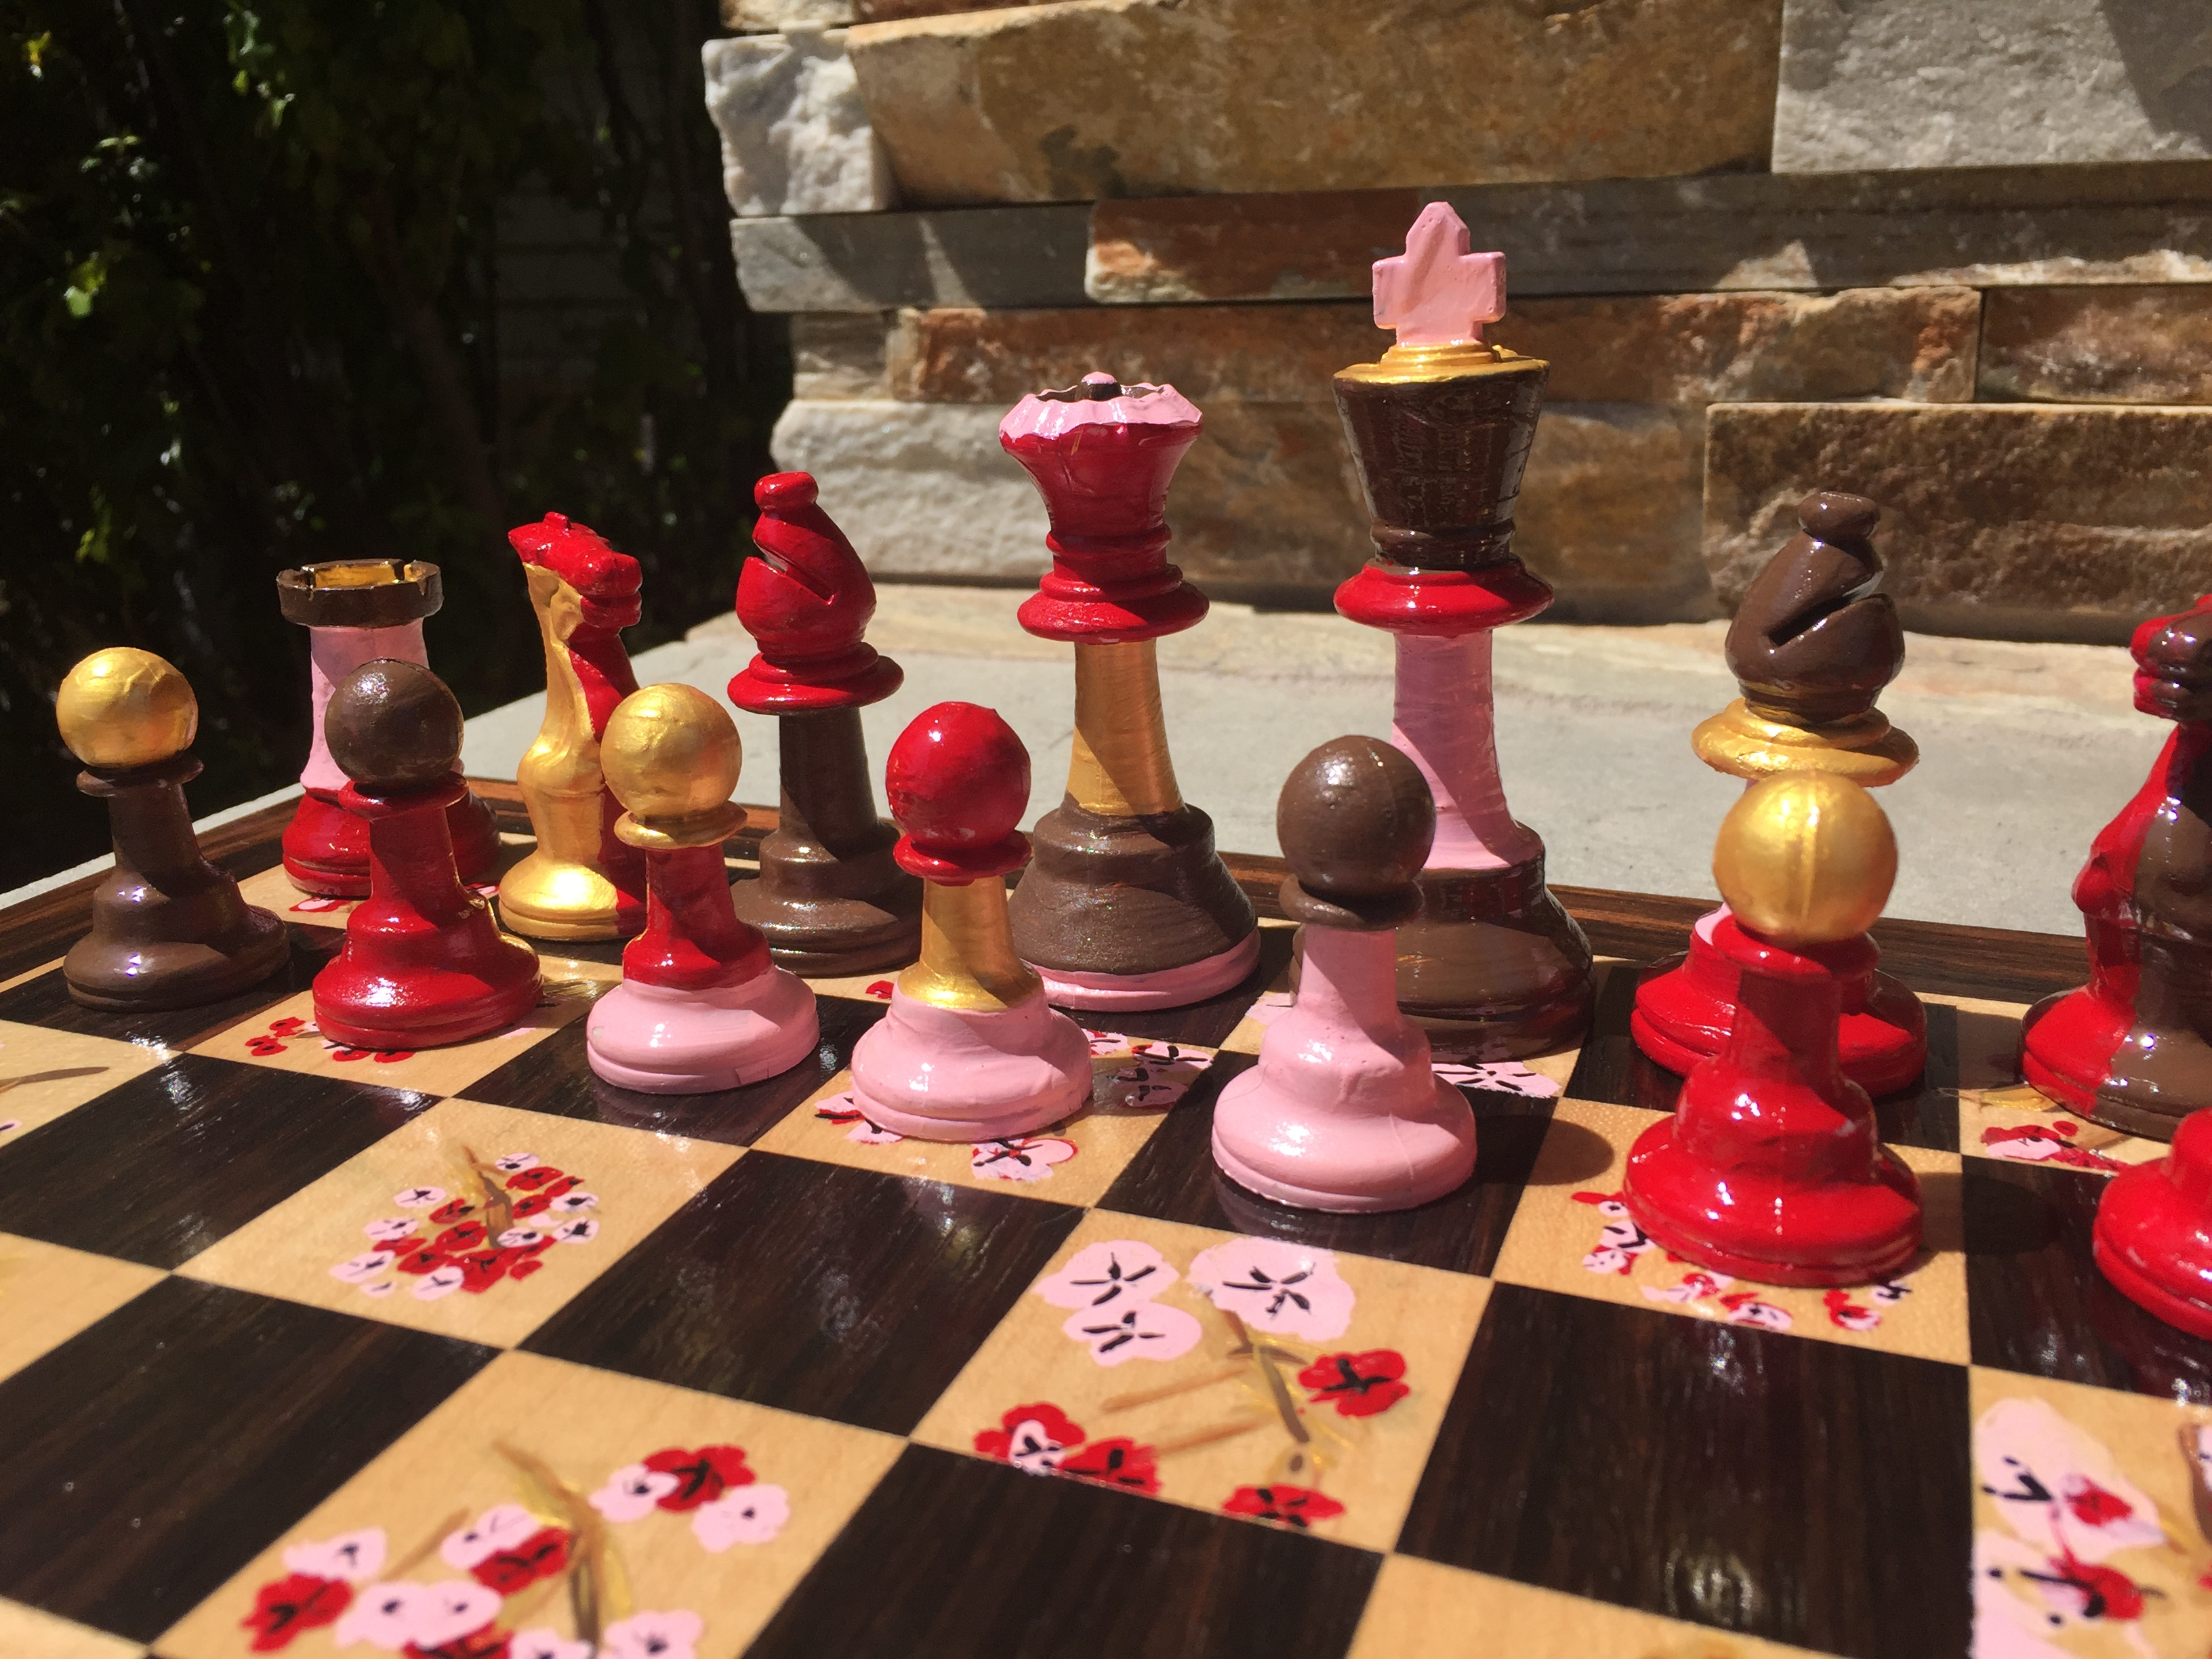 Kindergartners Paint Chess Sets Like this flower one